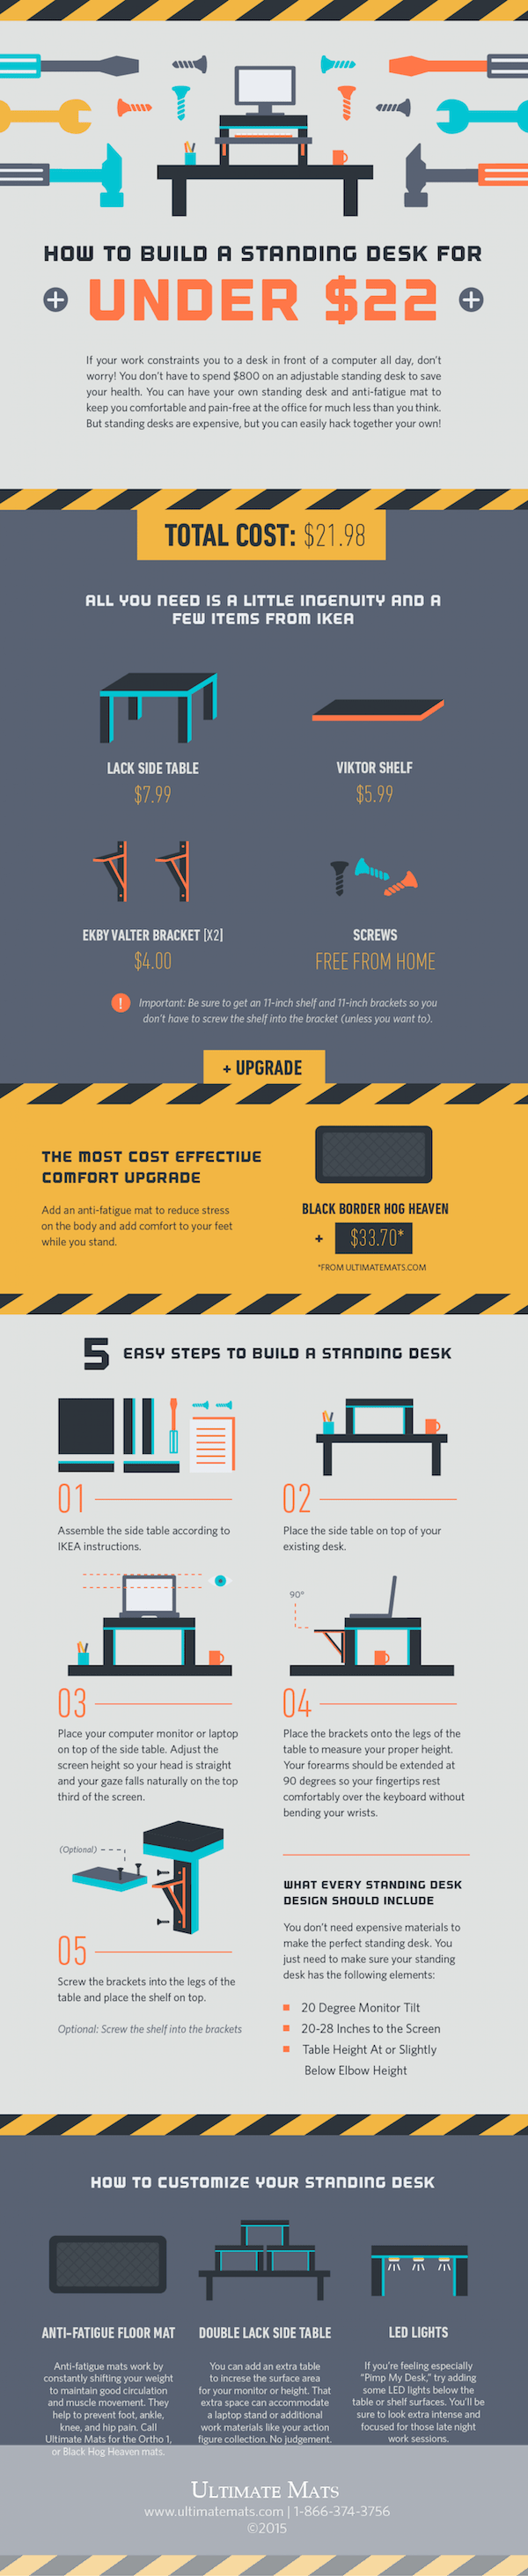 how to build a cheap standing desk for under 22 dollars infographic